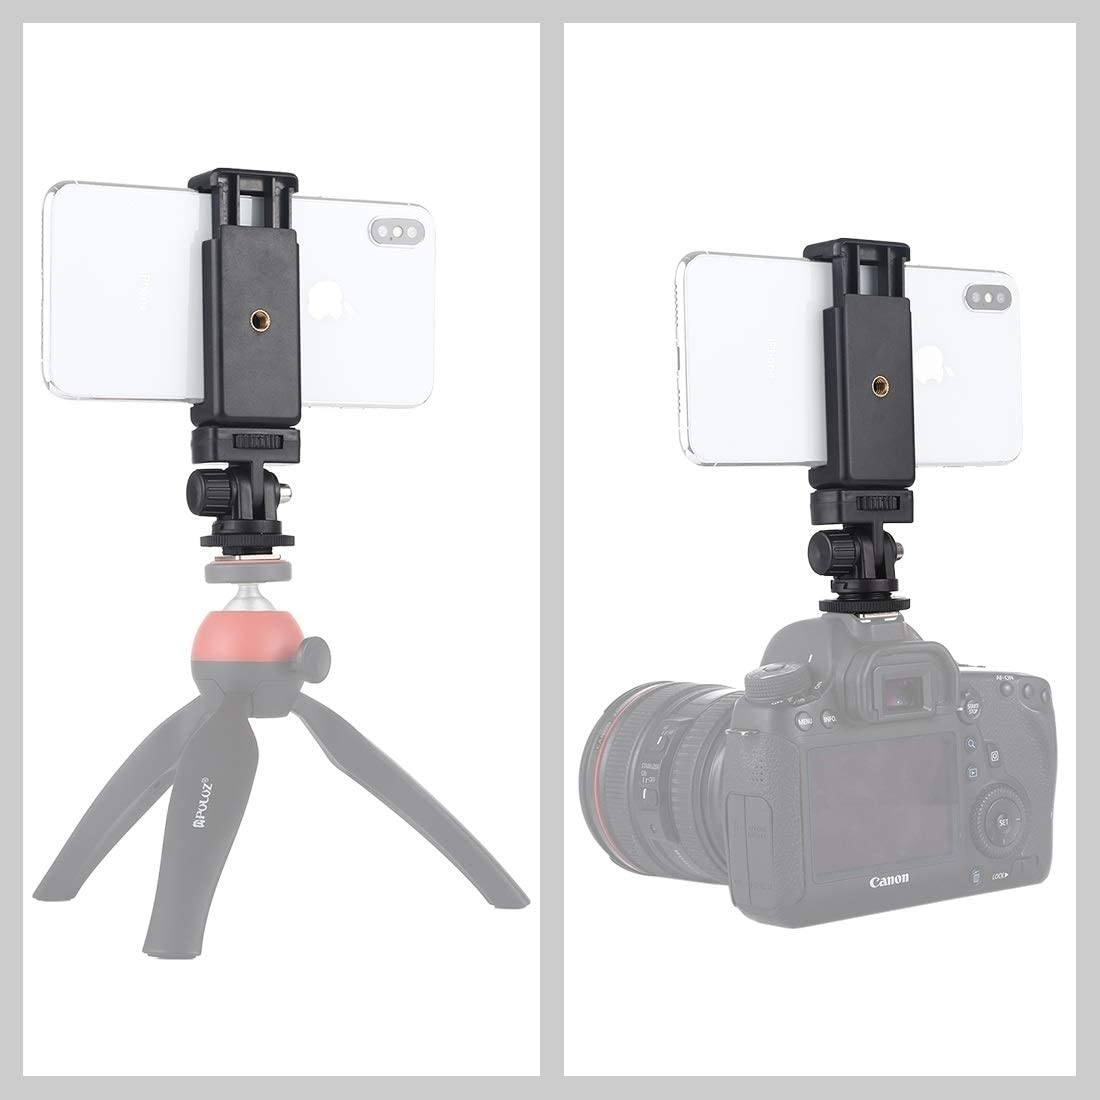 1//4 inch Screw Thread Cold Shoe Tripod Mount Adapter with Phone Clamp Durable